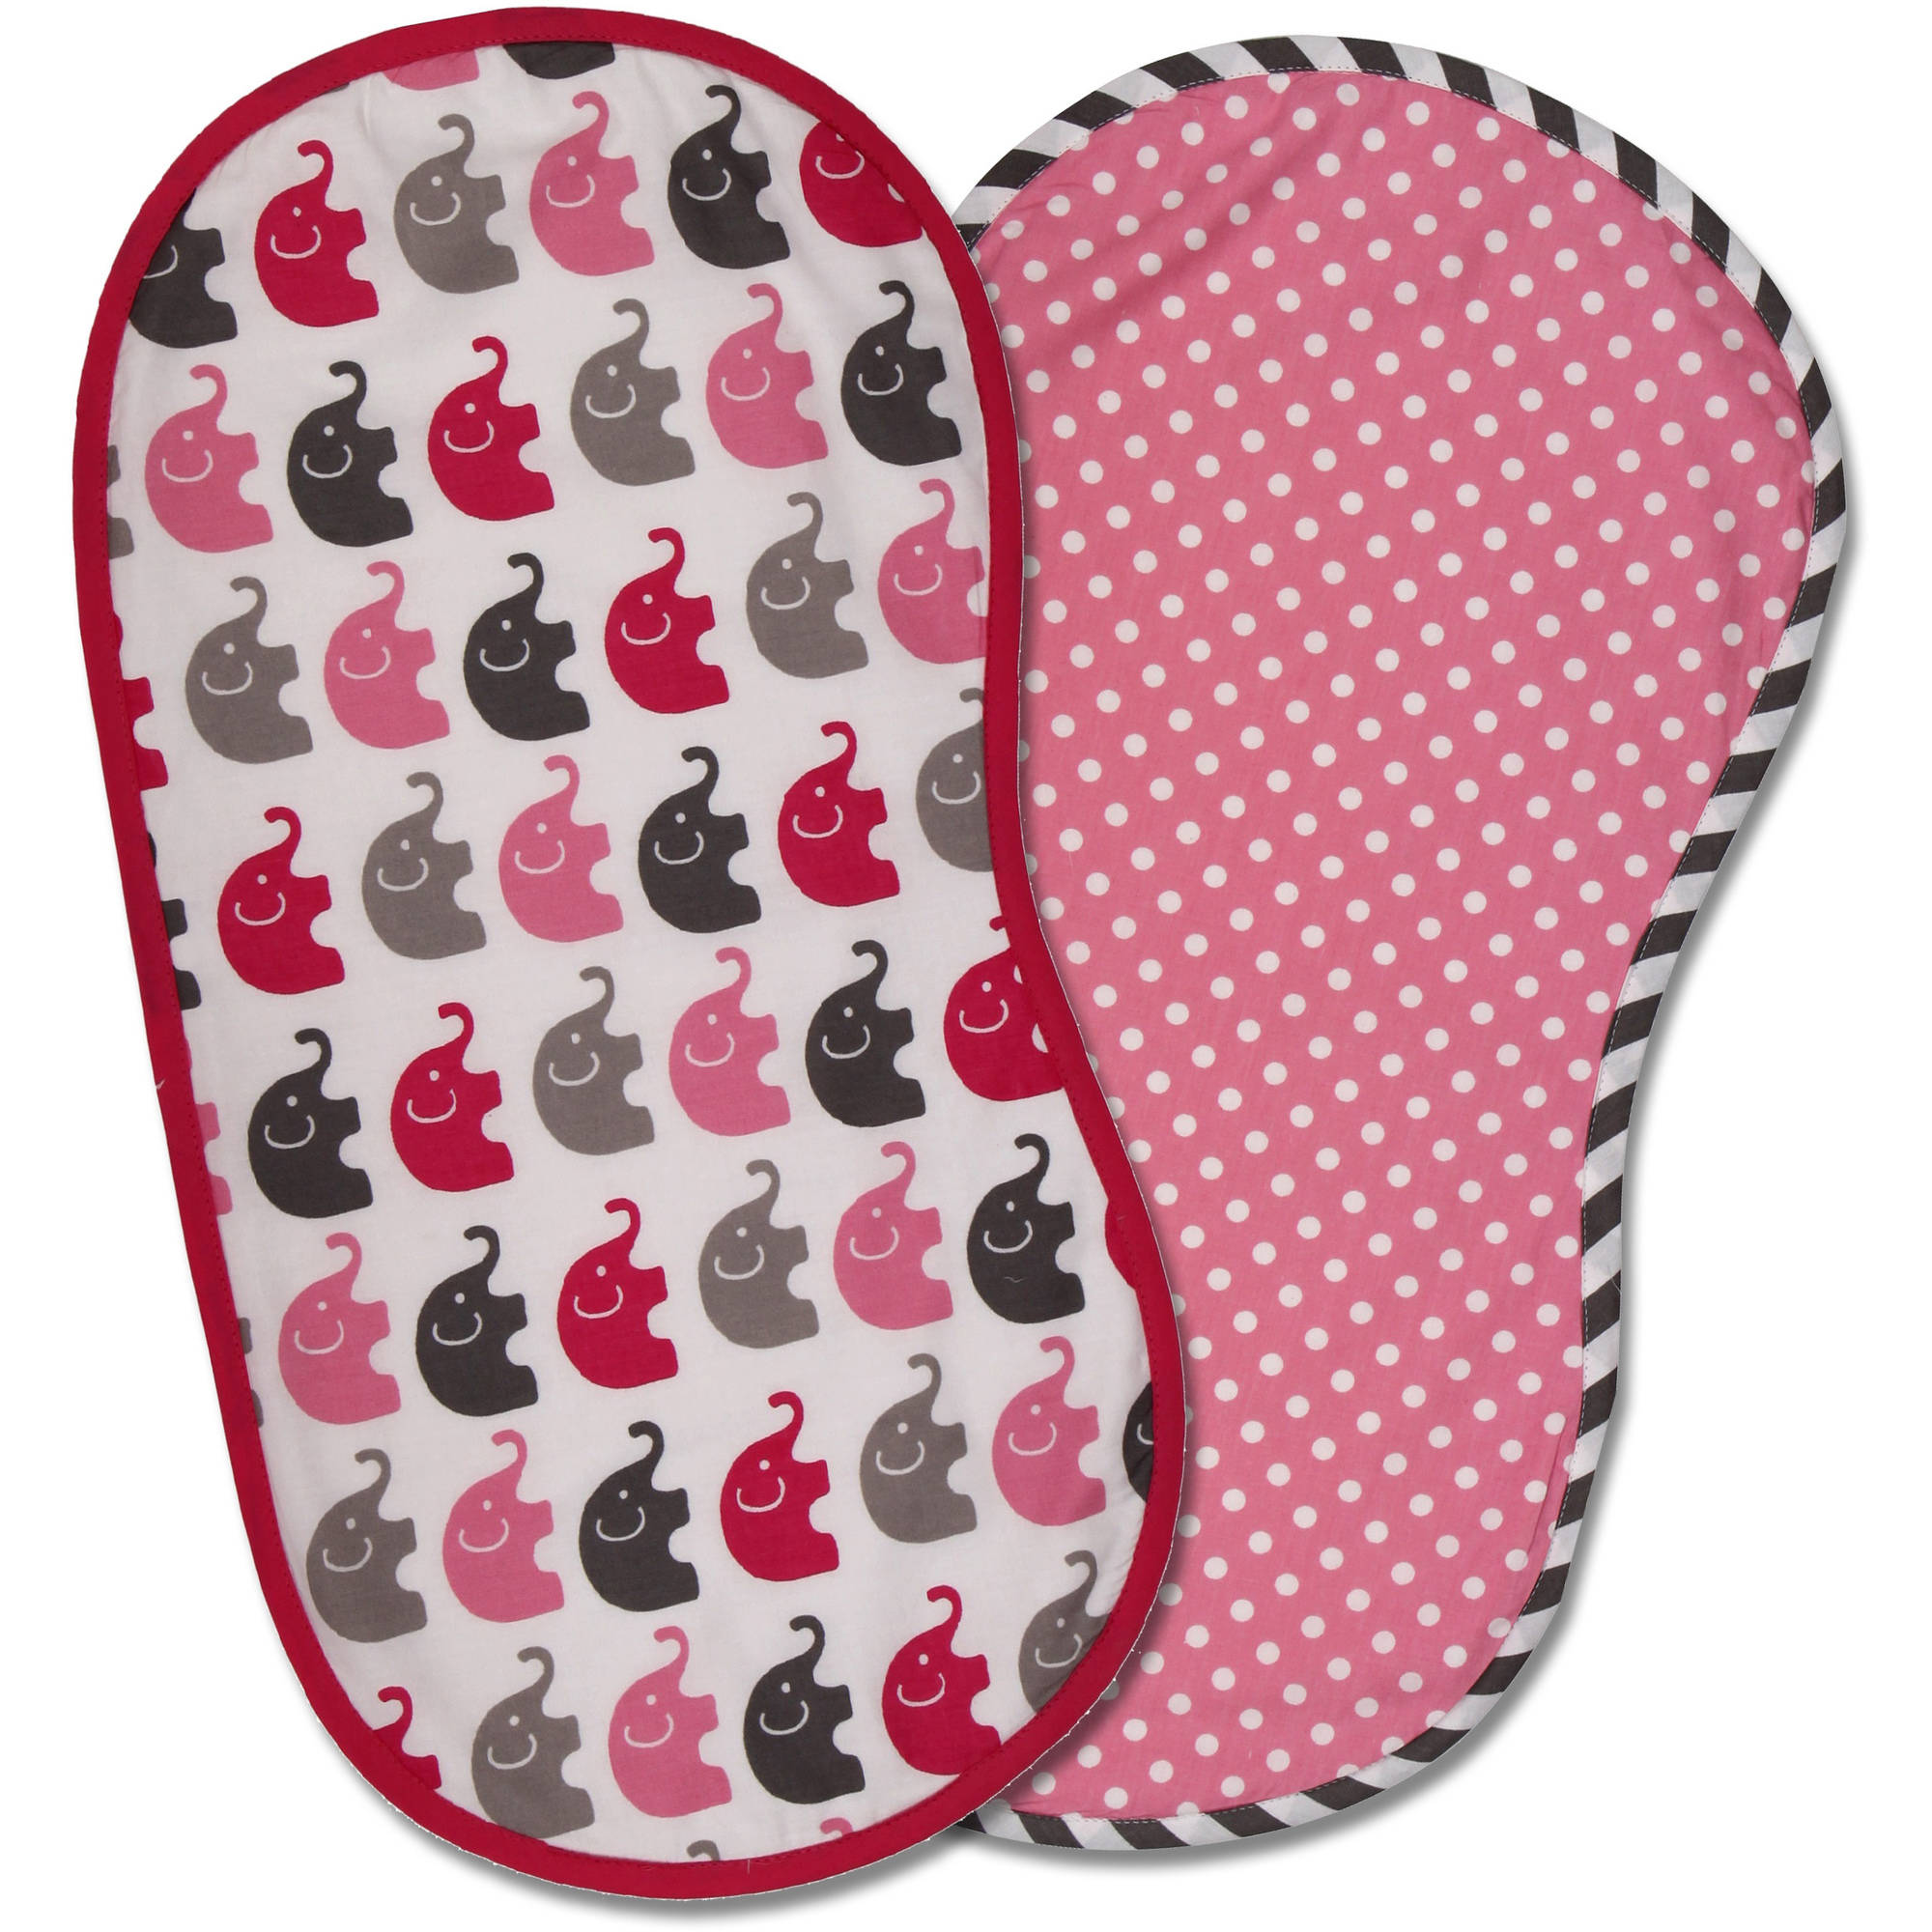 Bacati Elephants Burpies, Set of 2, Pink/Gray